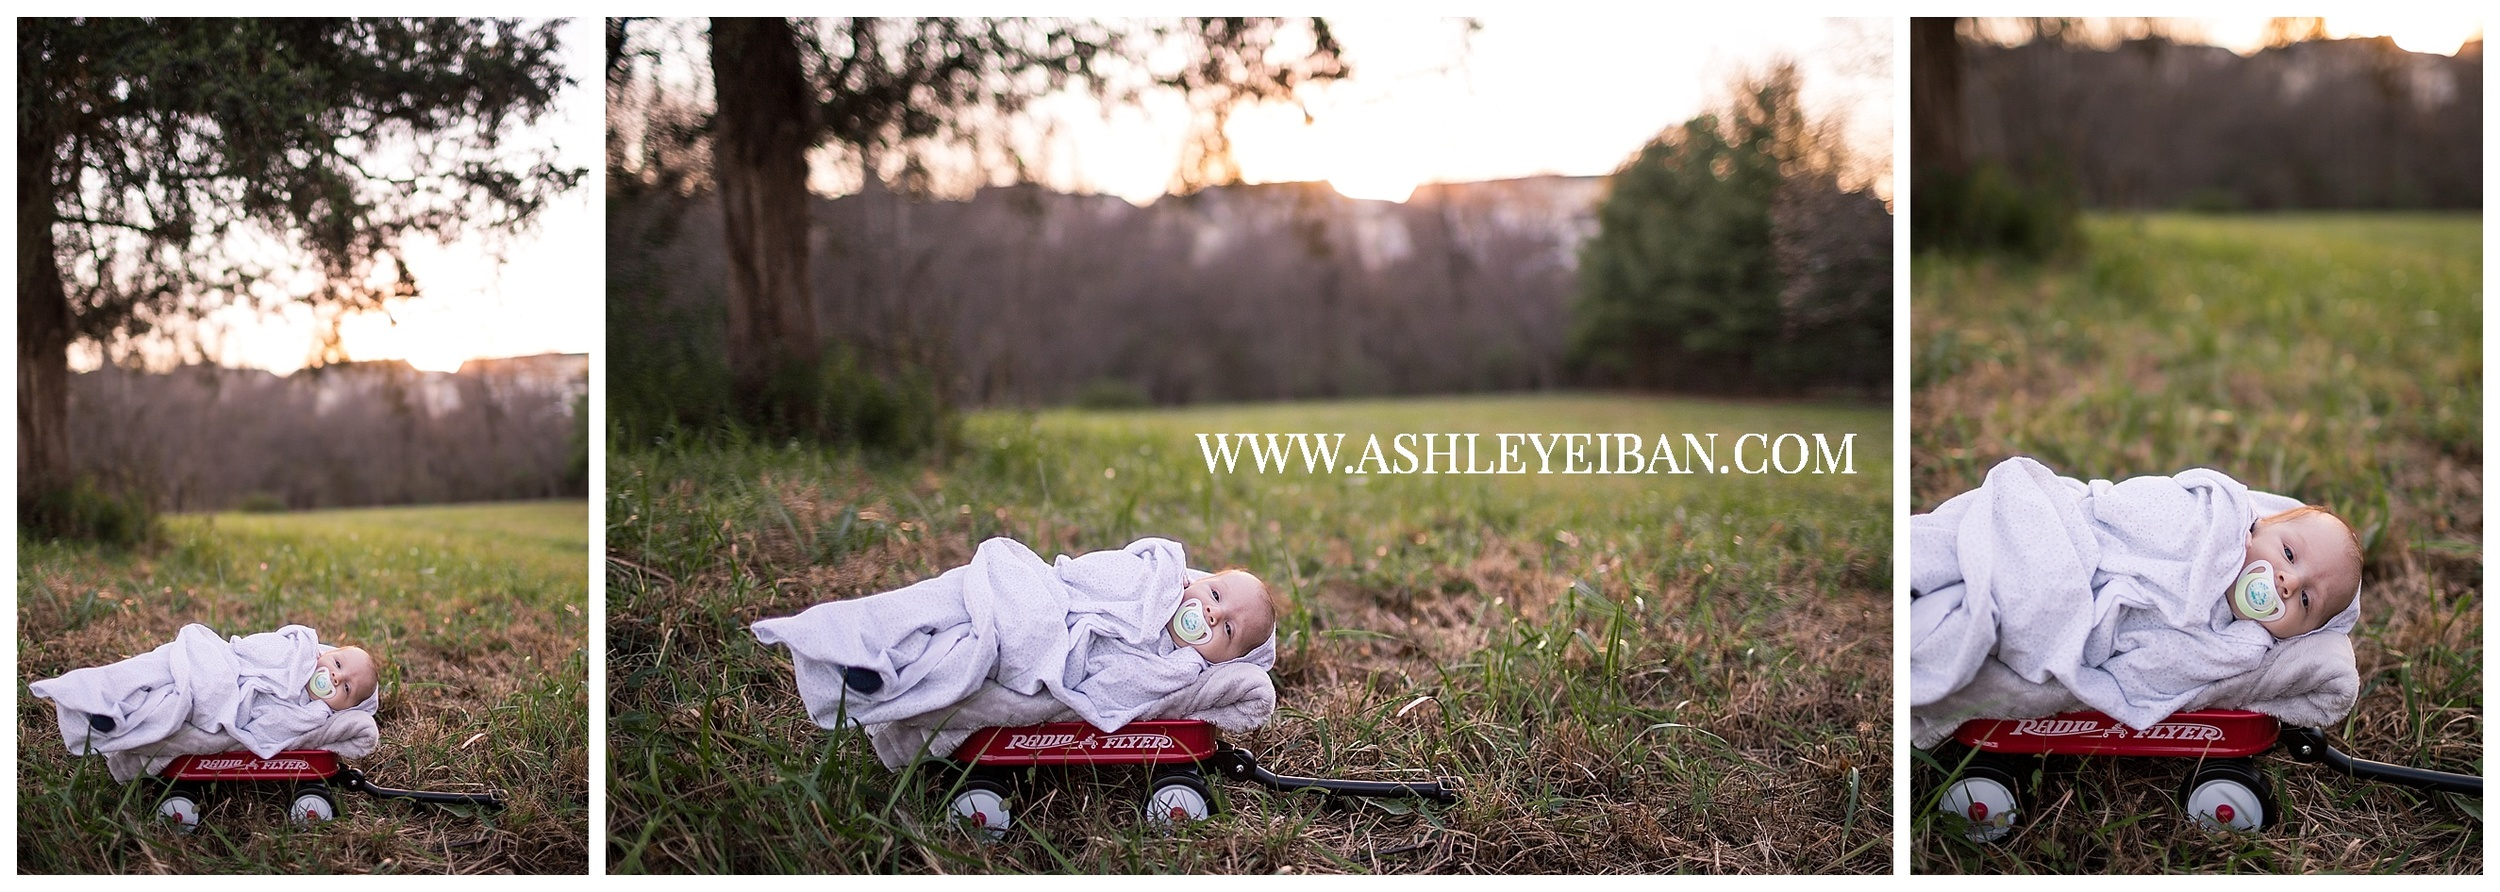 Wedding & Portrait Photographer in Lynchburg, VA || Central VA Family Photographer || Ashley Eiban Photography || www.ashleyeiban.com